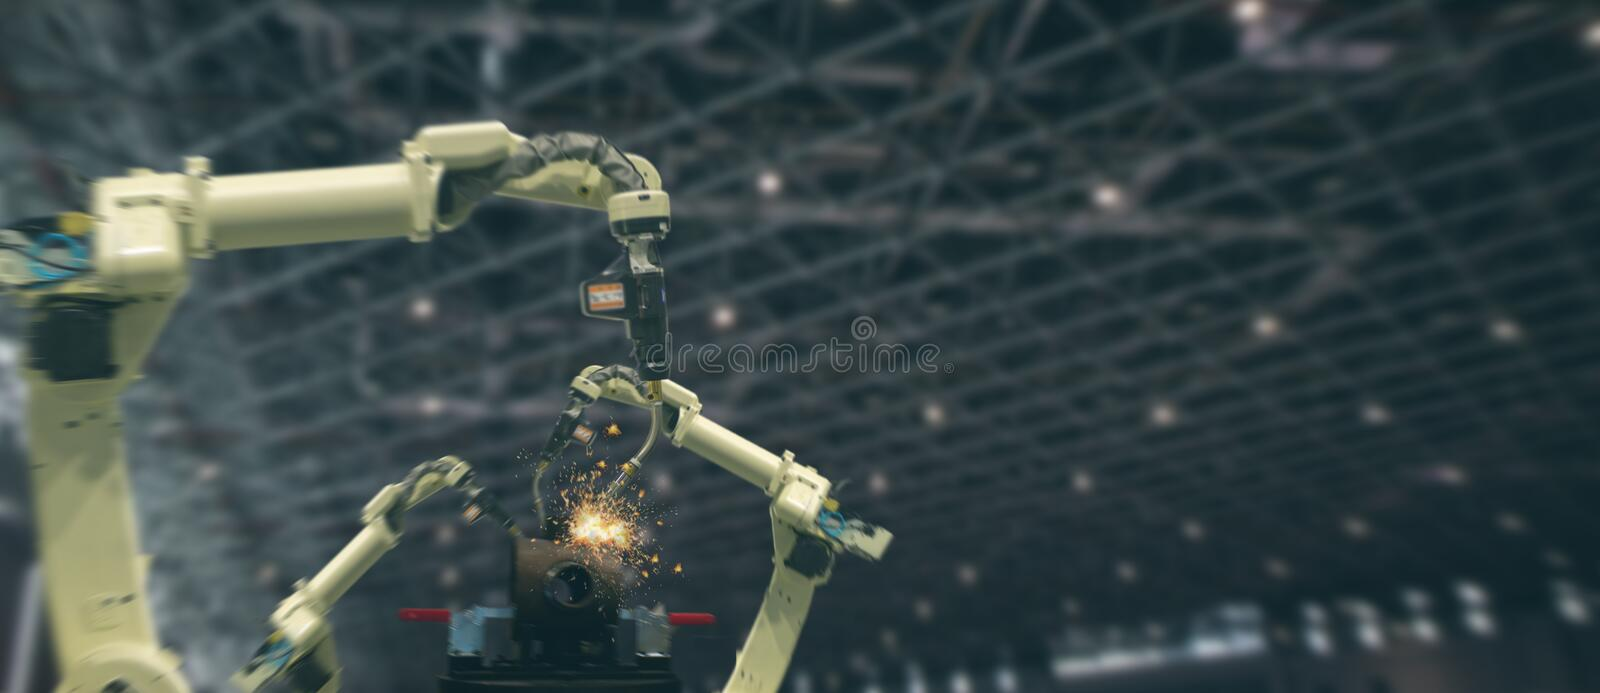 Iot industry 4.0 technology concept.Smart factory using trending automation robotic arms with part on conveyor belt in operation l royalty free stock images